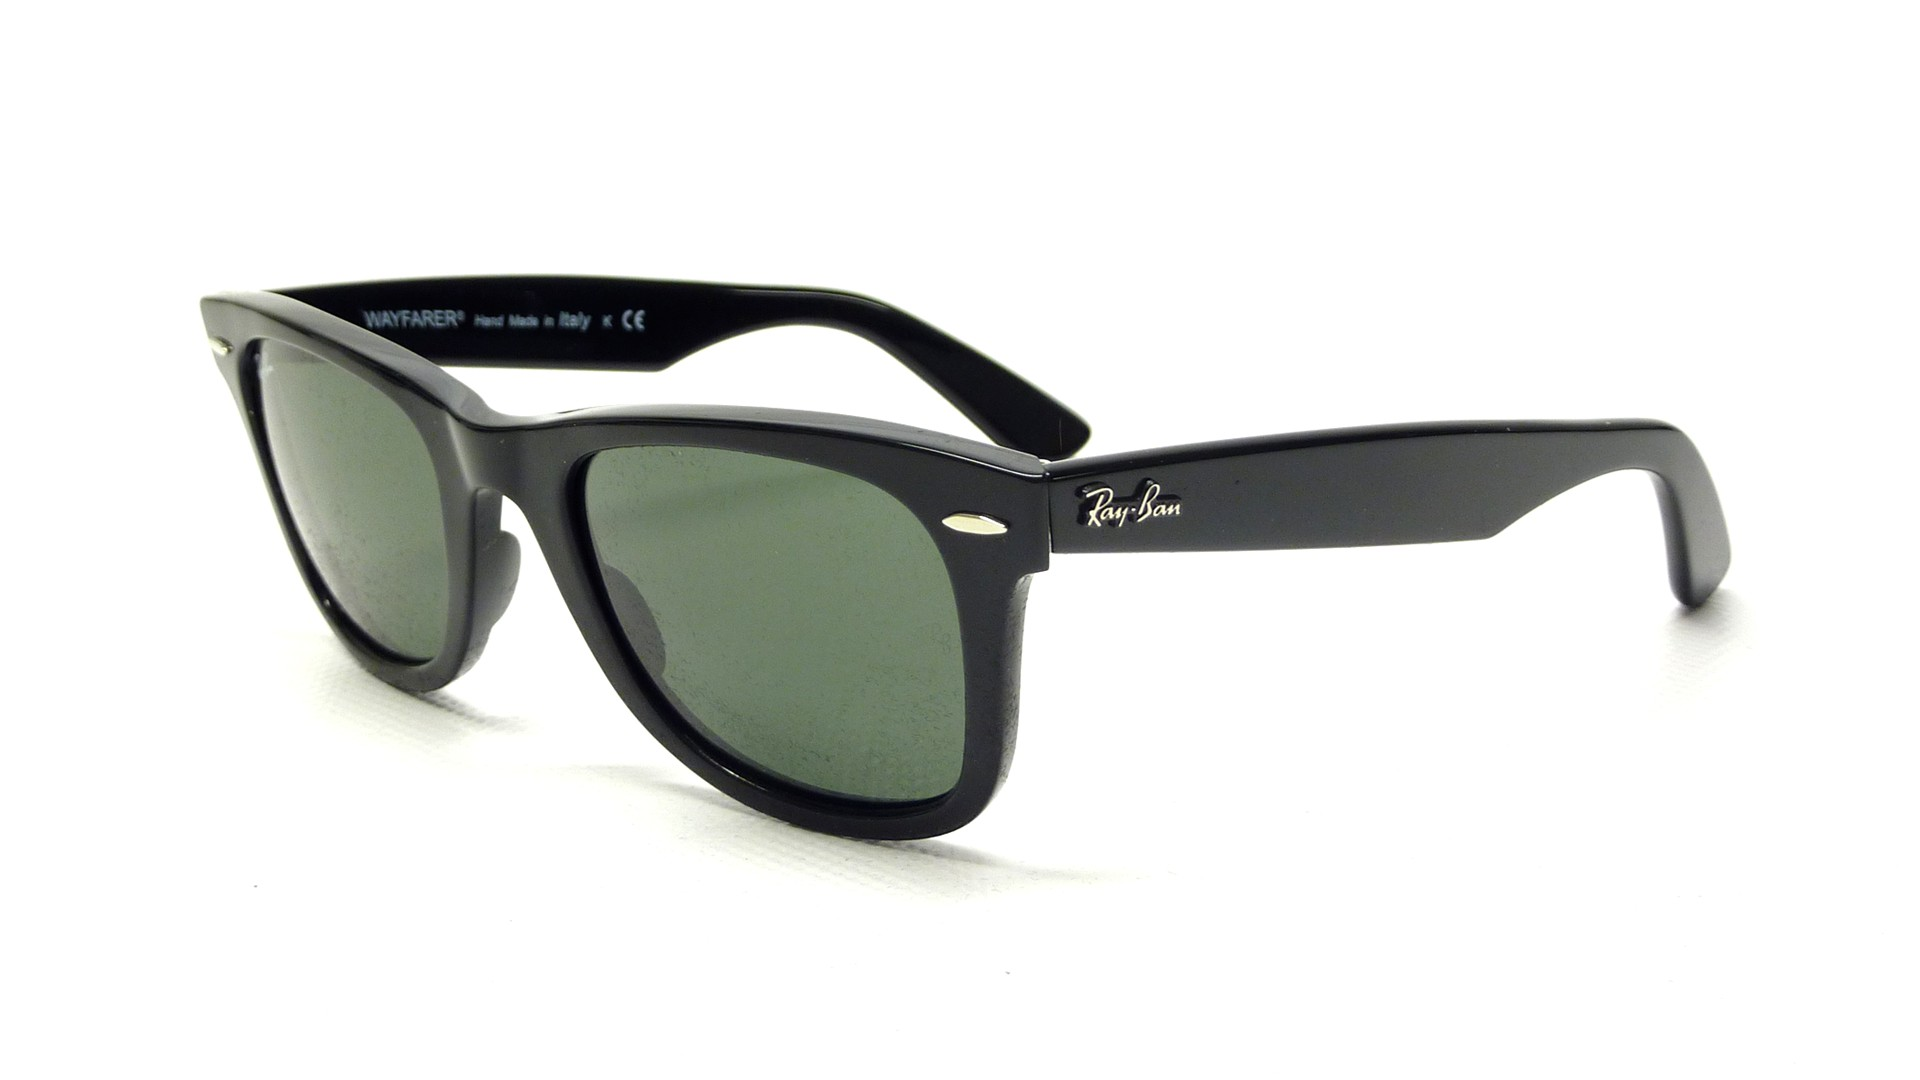 Sunglasses Ray-Ban Original Wayfarer Black RB2140 901 50-22 Medium 1b666c3bbf